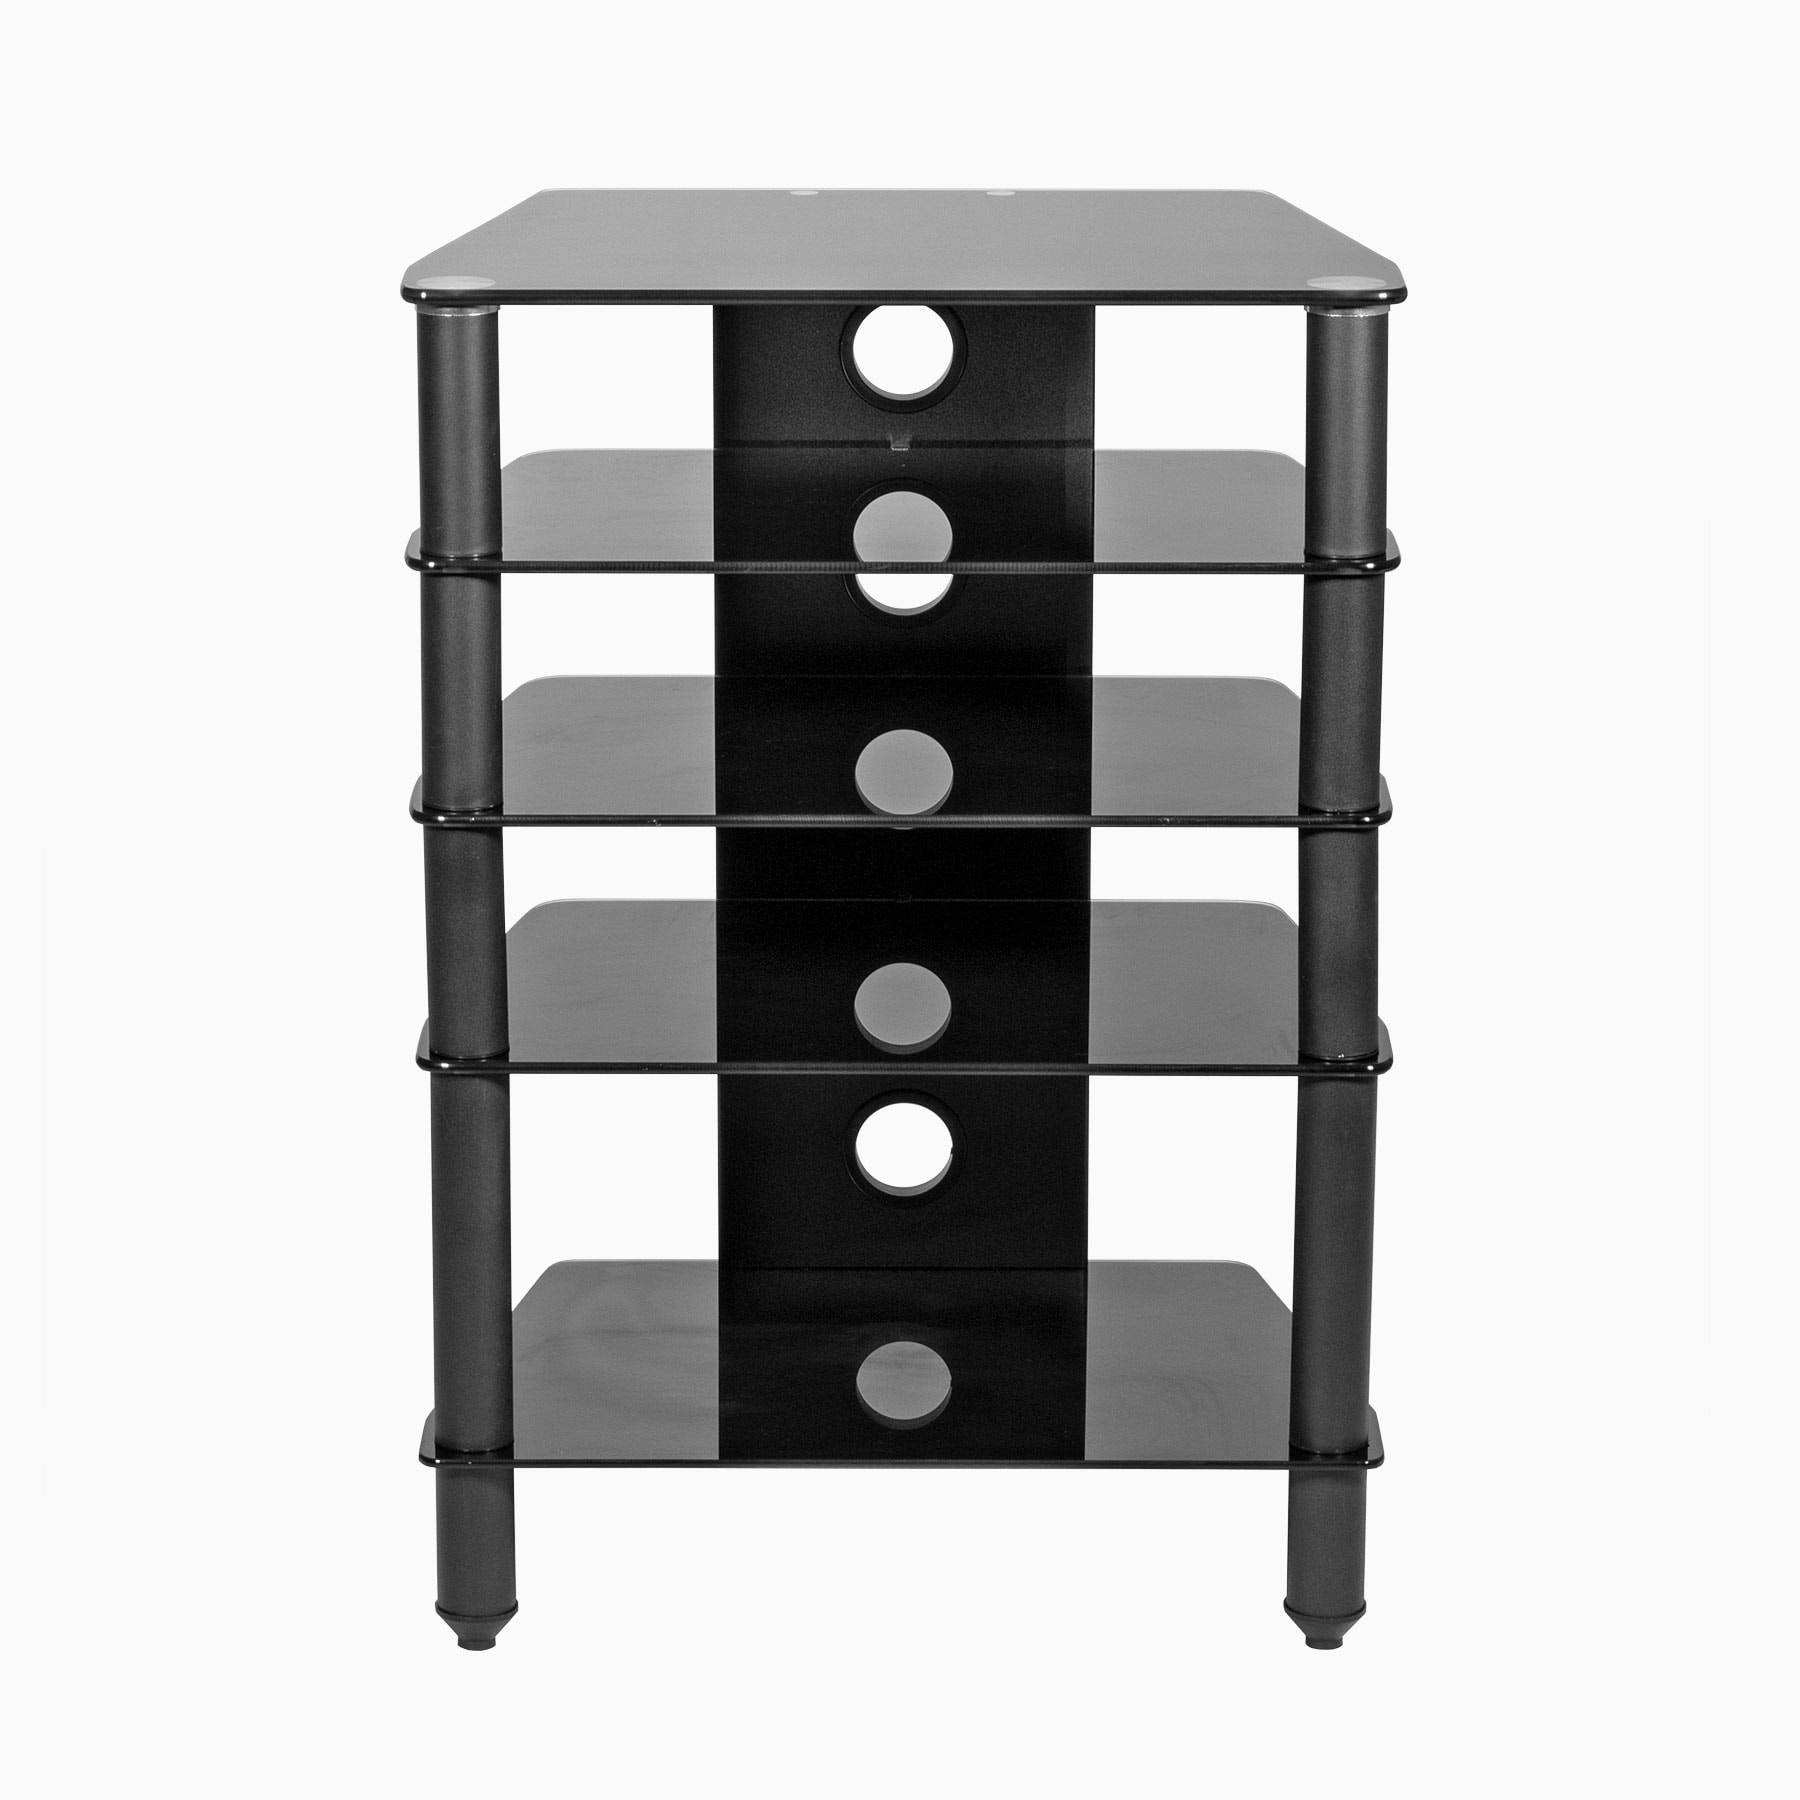 Hifi Rack Abschließbar Hi Fi Stand 500mm Deep Black Glass Shelves For Av